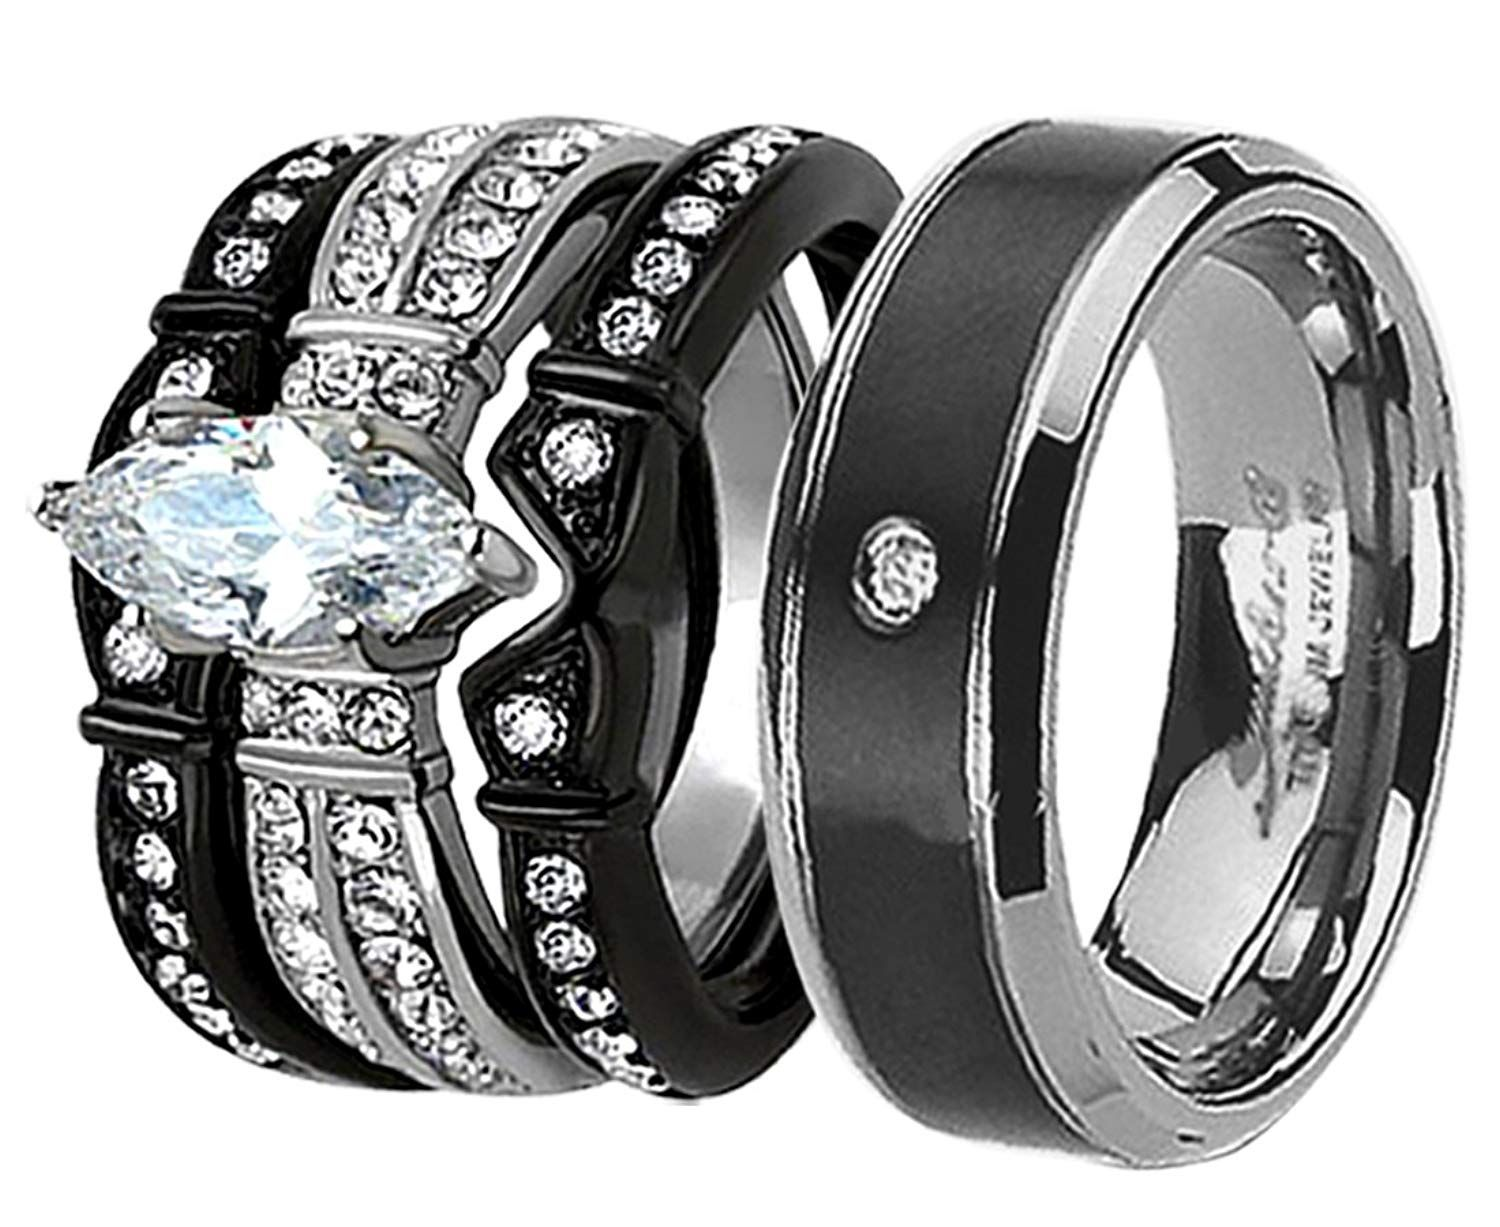 90bc1e5b90 Devuggo MABELLA His Hers Wedding Ring Sets Couples Matching Rings Black  Women's Stainless Steel Cubic Zirconia Wedding Engagement Ring Bridal Sets  and Men's ...